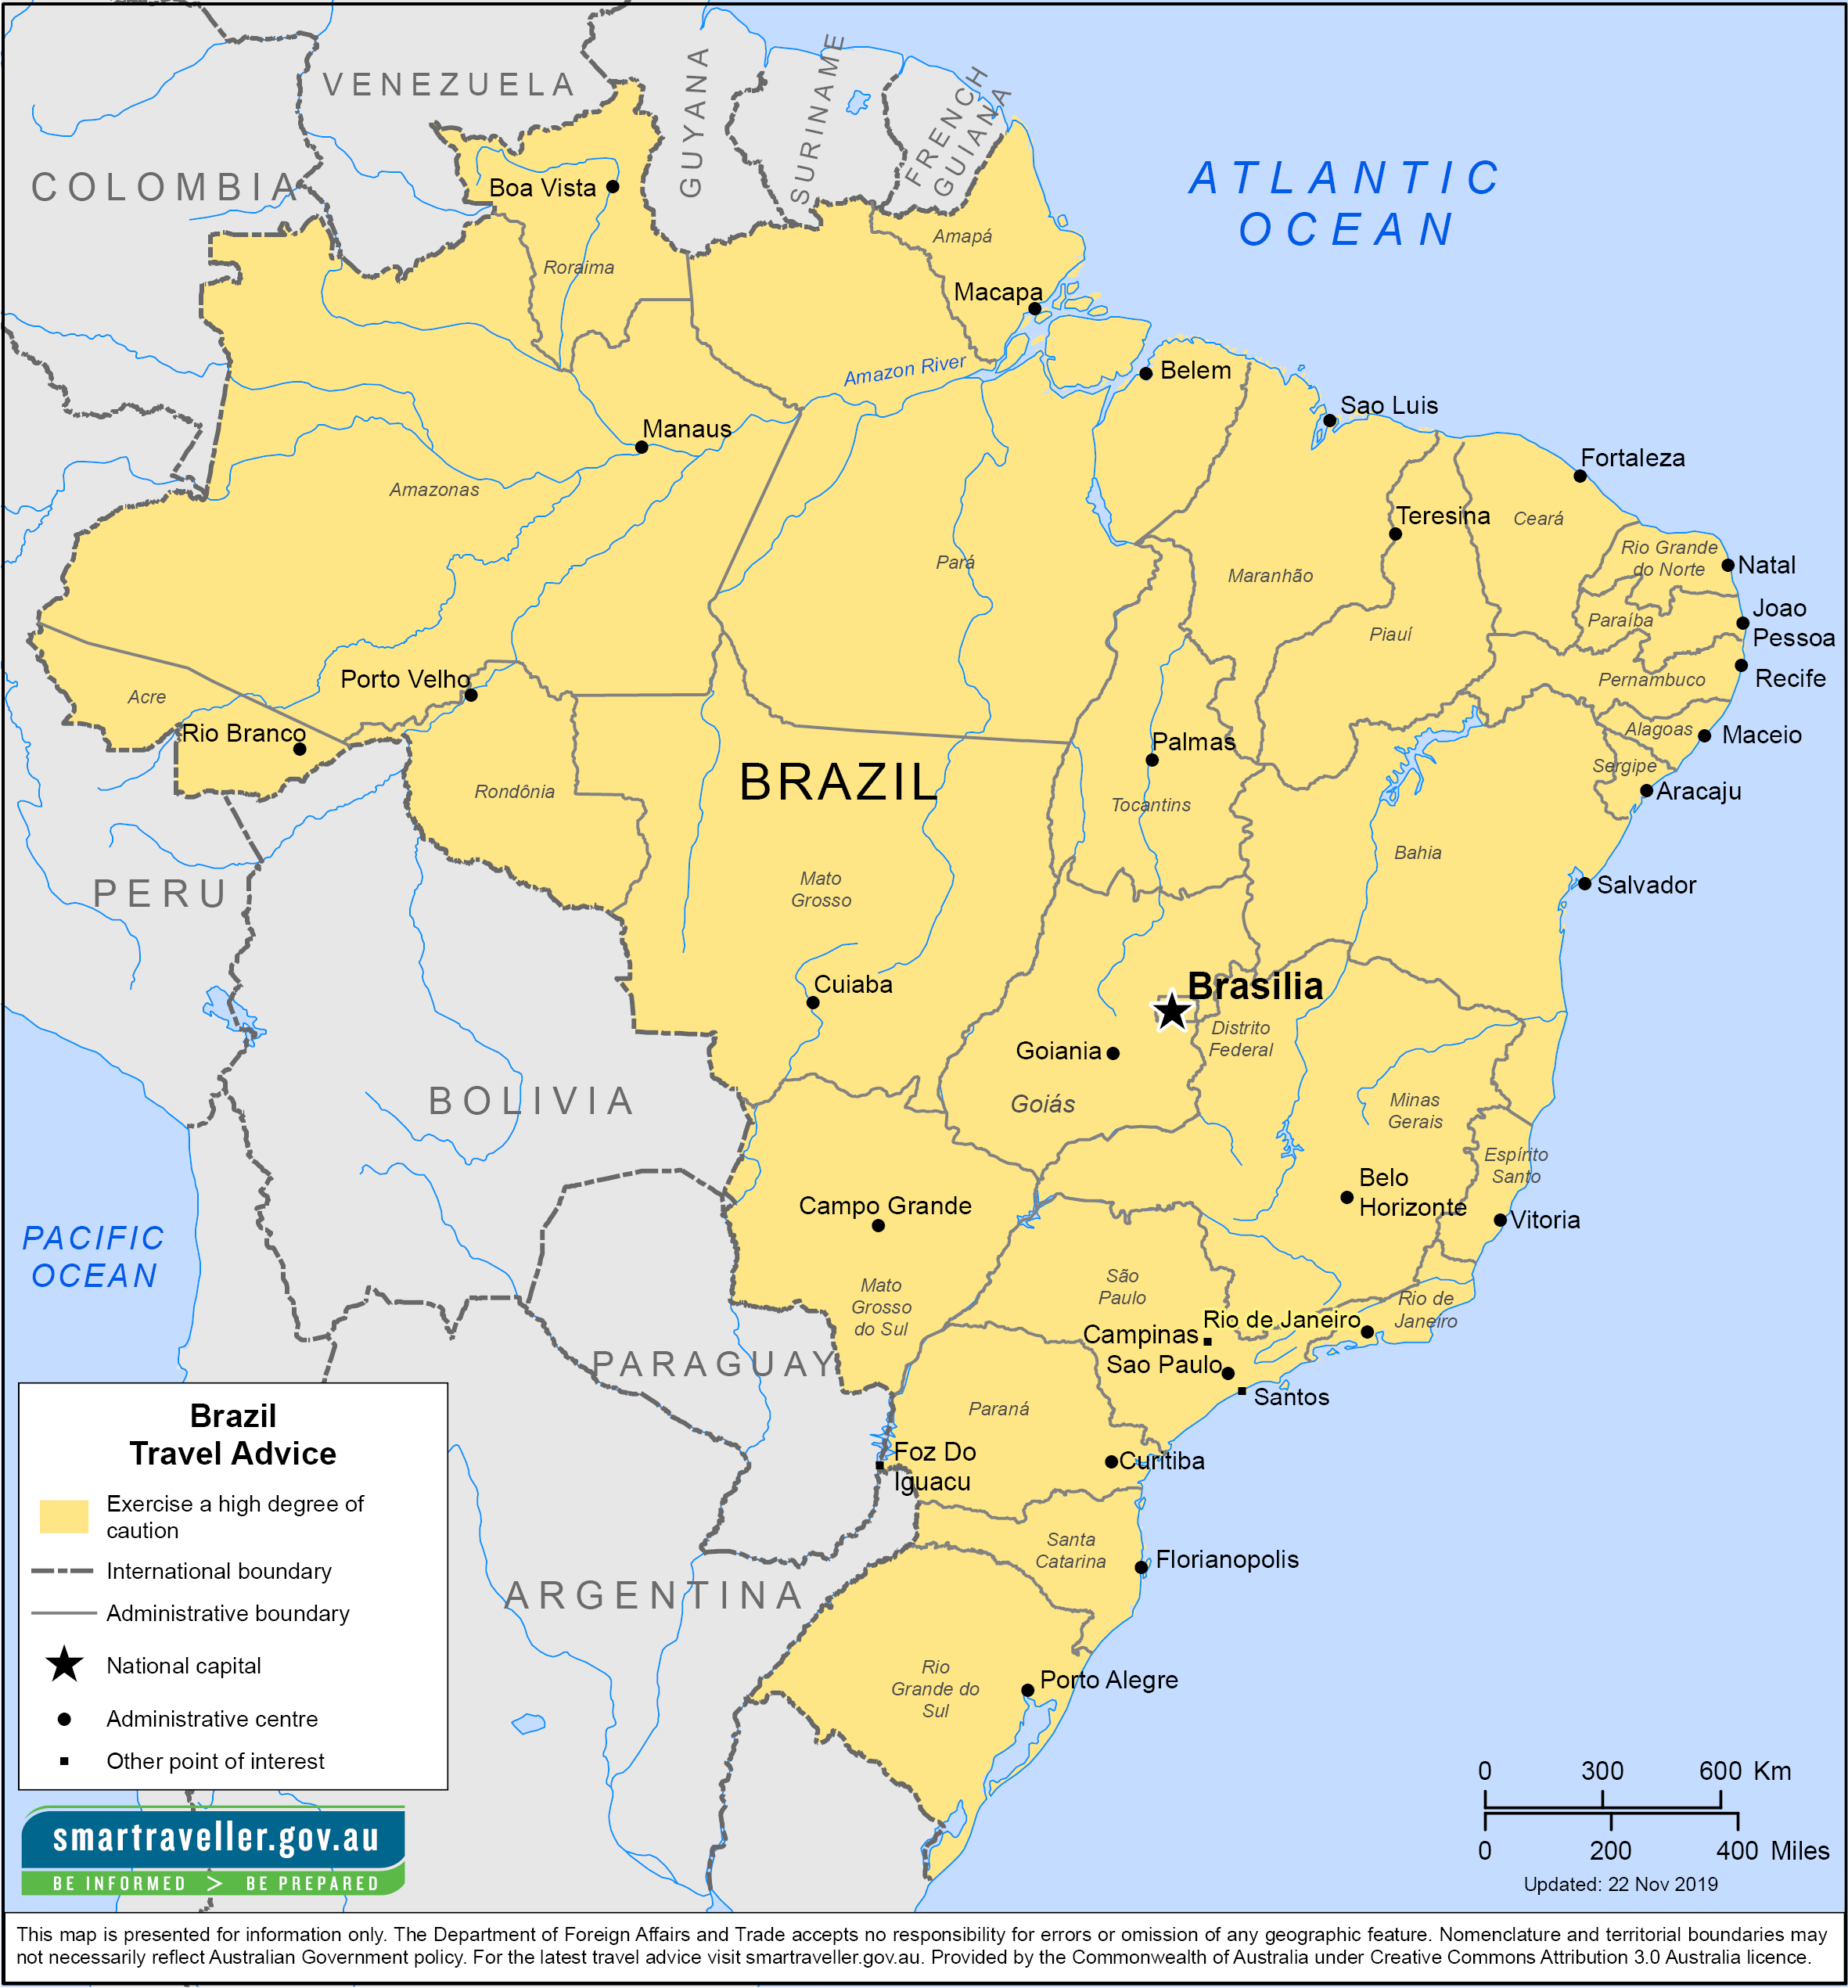 Brazil Traveler Information - Travel Advice